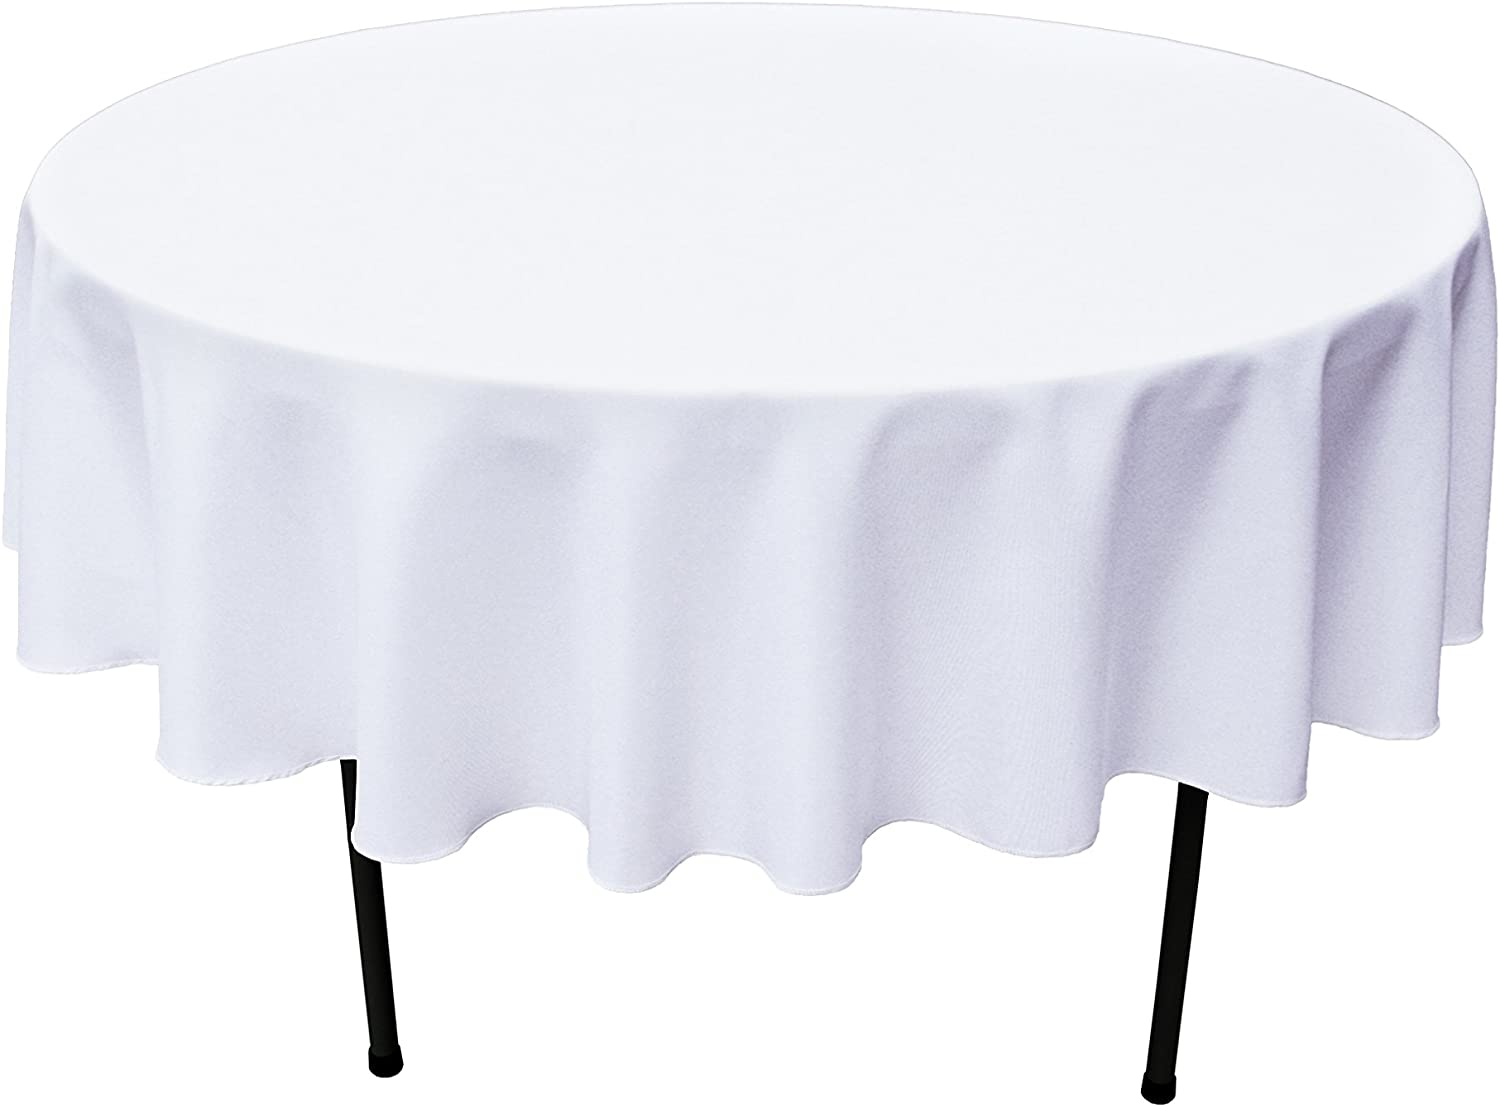 GEFEII Kitchen White Tablecloth 70 inch Round Tablecloths Solid Polyester Table Cloth for Wedding Party Restaurant Banquet Dining Buffet Table Picnic Decorations (Round-70 inch, White)